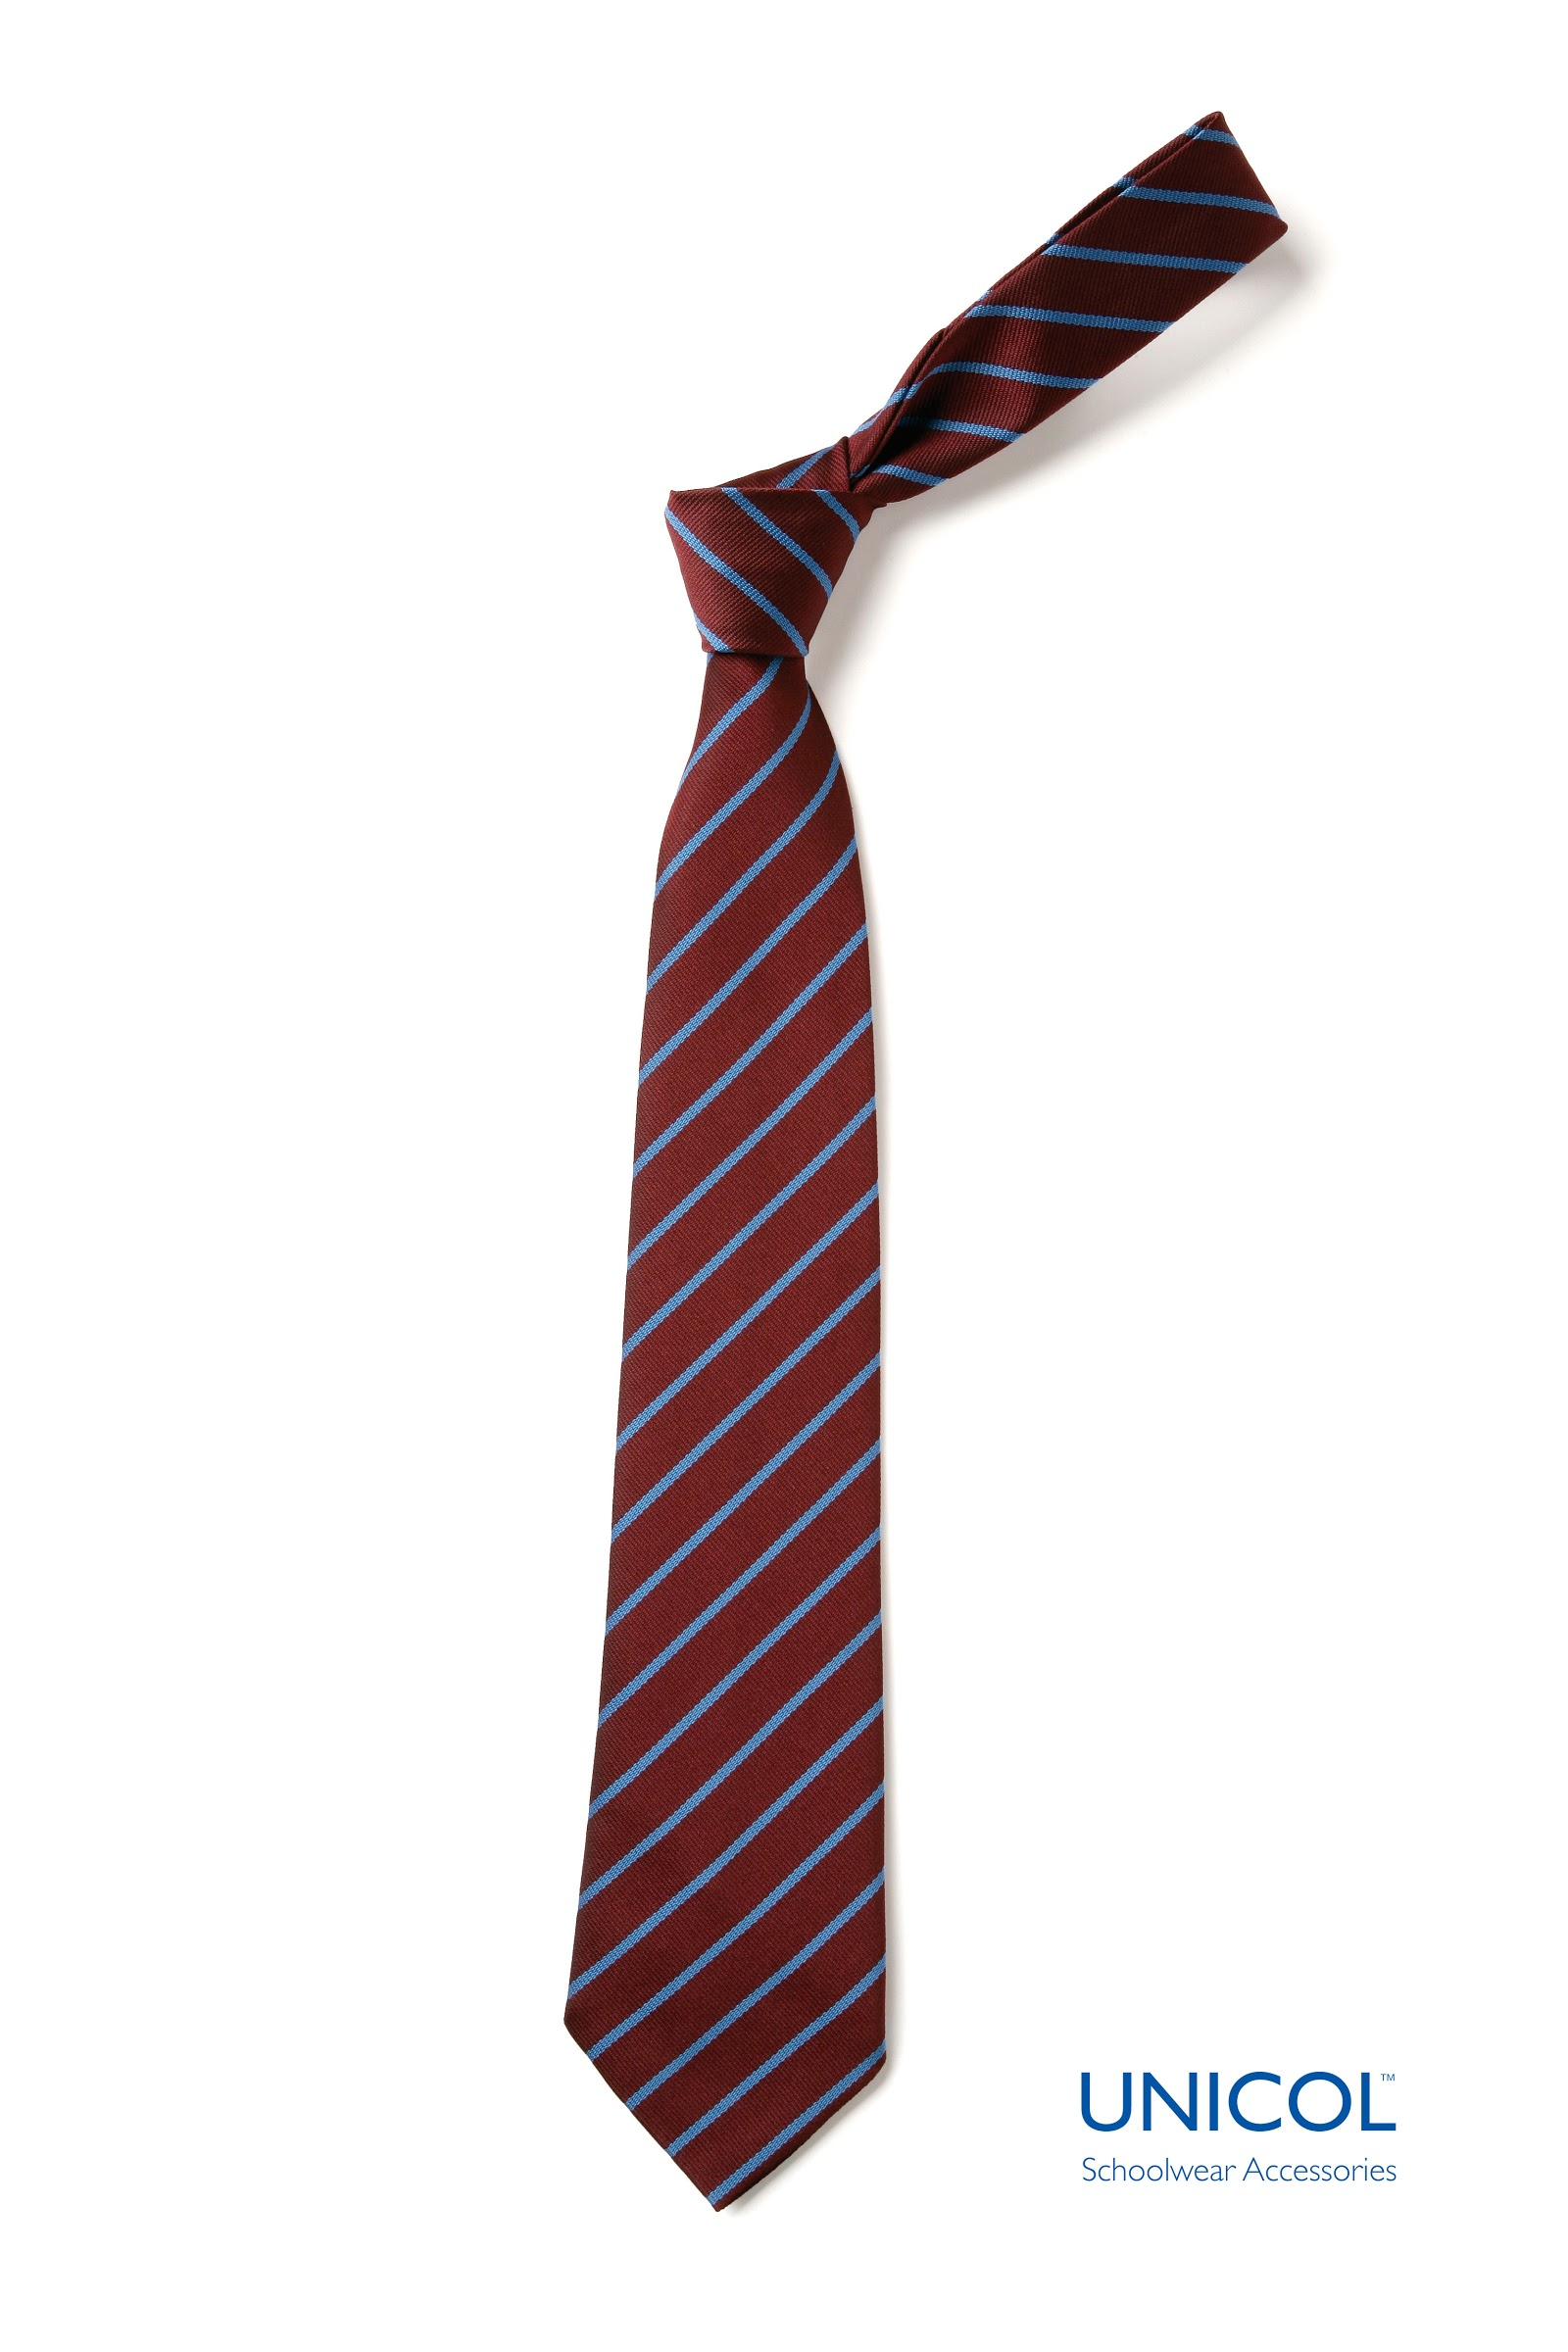 A necktie, or simply a tie, is a long piece of cloth, worn usually by men, for decorative purposes around the neck, resting under the shirt collar and knotted at the throat.. Variants include the ascot tie, bow tie, bolo tie, zipper tie, cravat, Knit Tie and clip-on hitseparatingfiletransfer.tk modern necktie, ascot, and bow tie are descended from the hitseparatingfiletransfer.tkes are generally unsized, but may be available in.